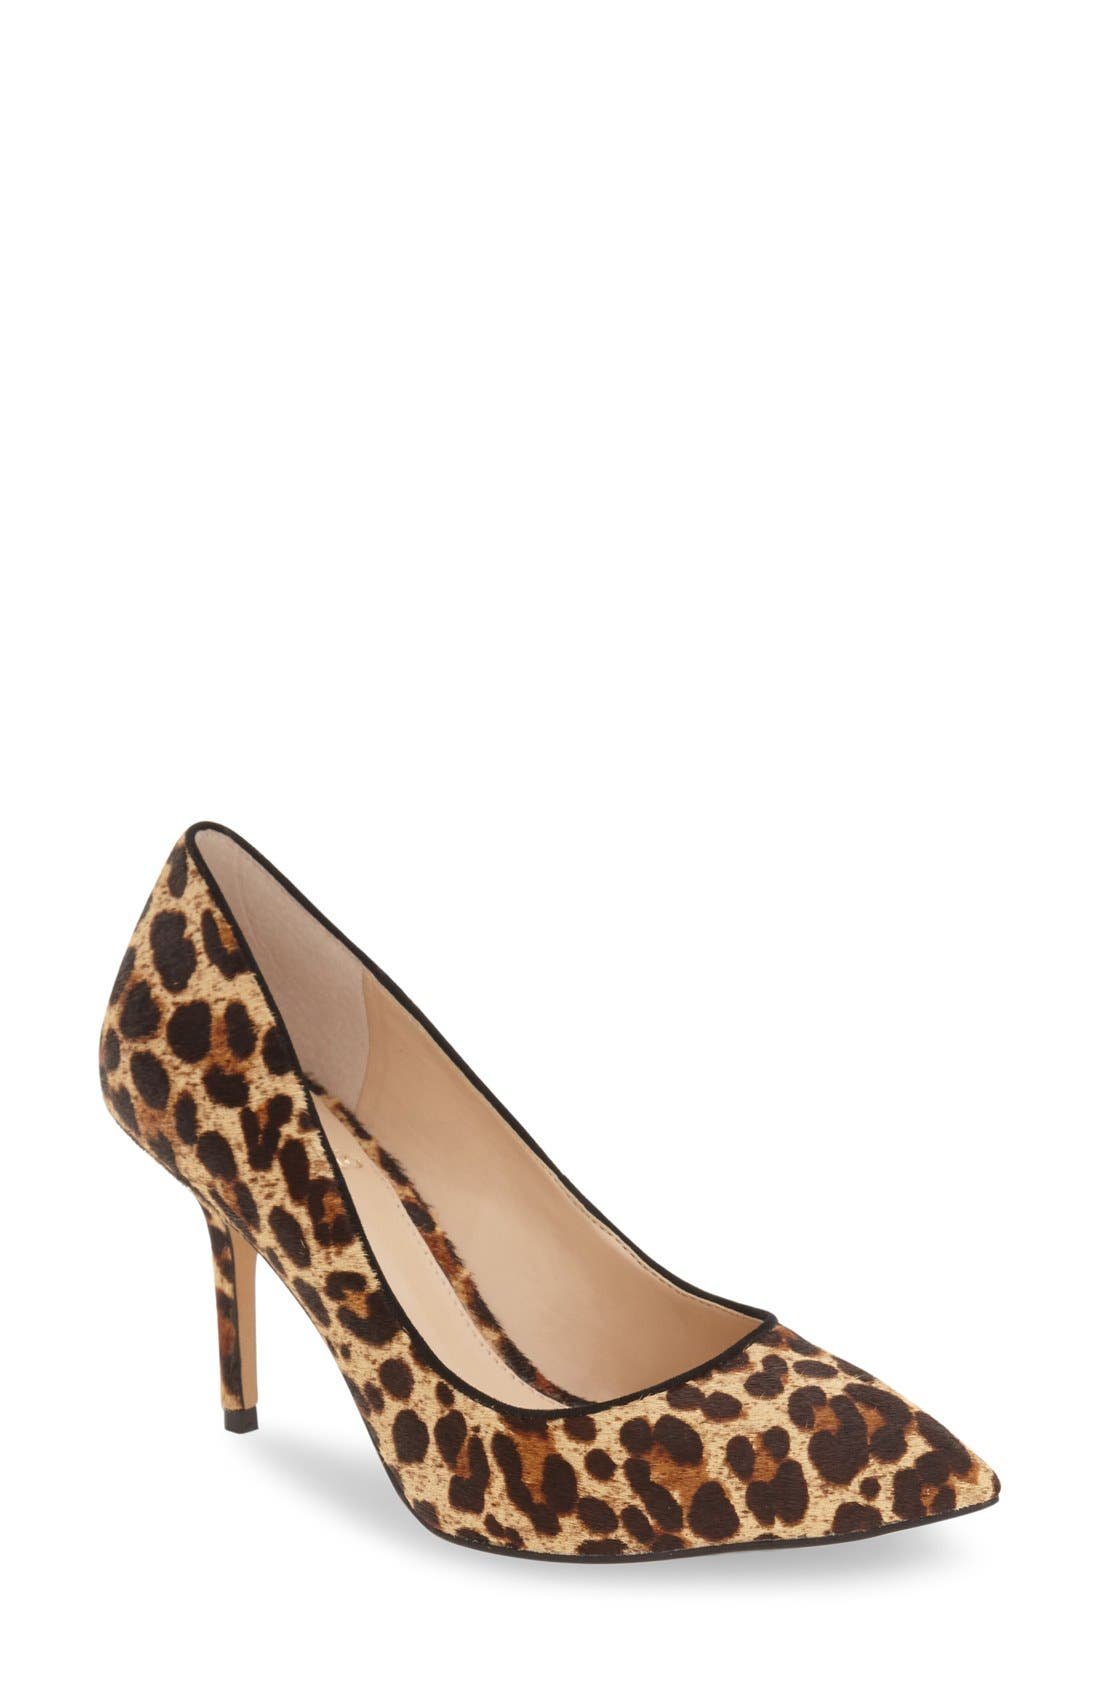 Alternate Image 1 Selected - Vince Camuto 'Salest' Genuine Calf Hair Pump (Women)